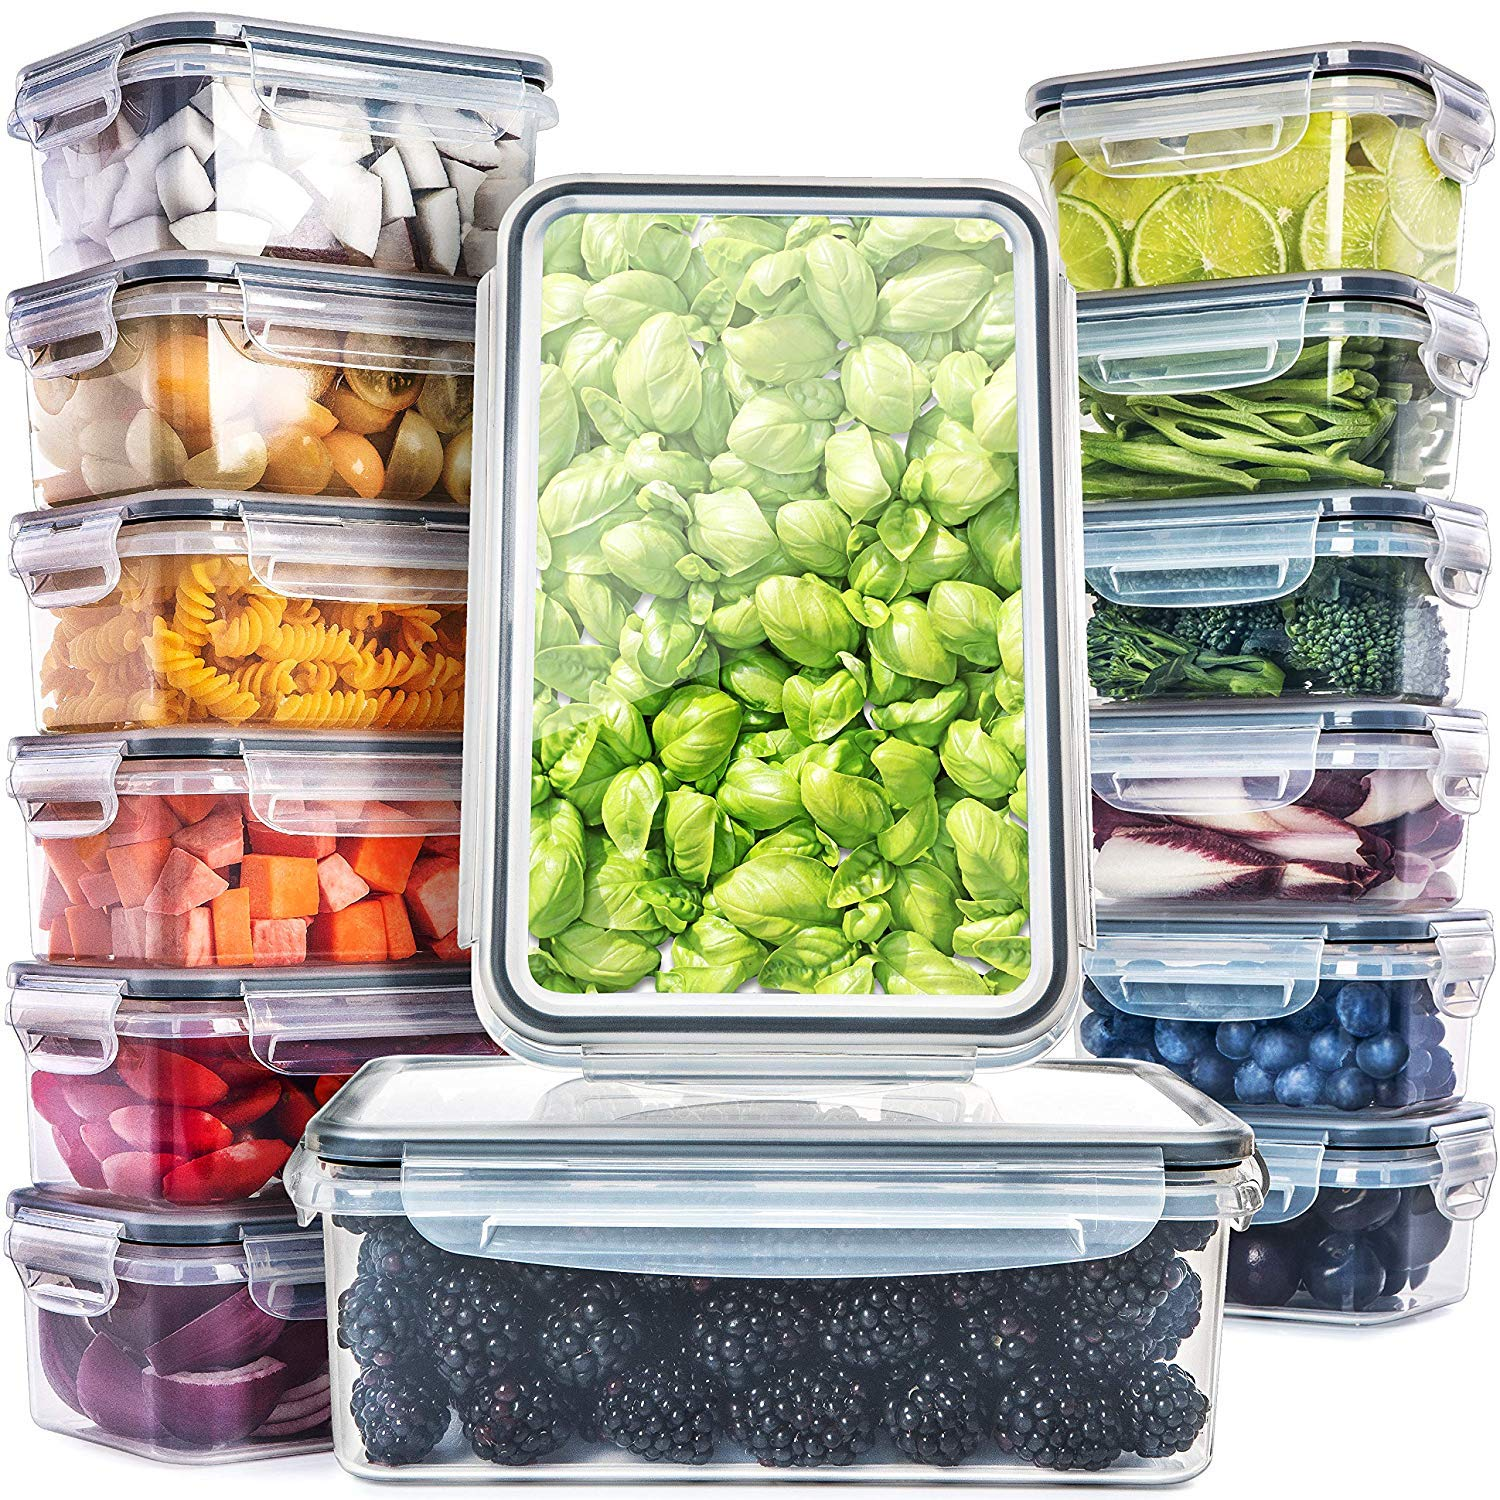 Fullstar Food Storage Containers with Lids (14 Pack) - Plastic Containers with Lids BPA-Free by Fullstar